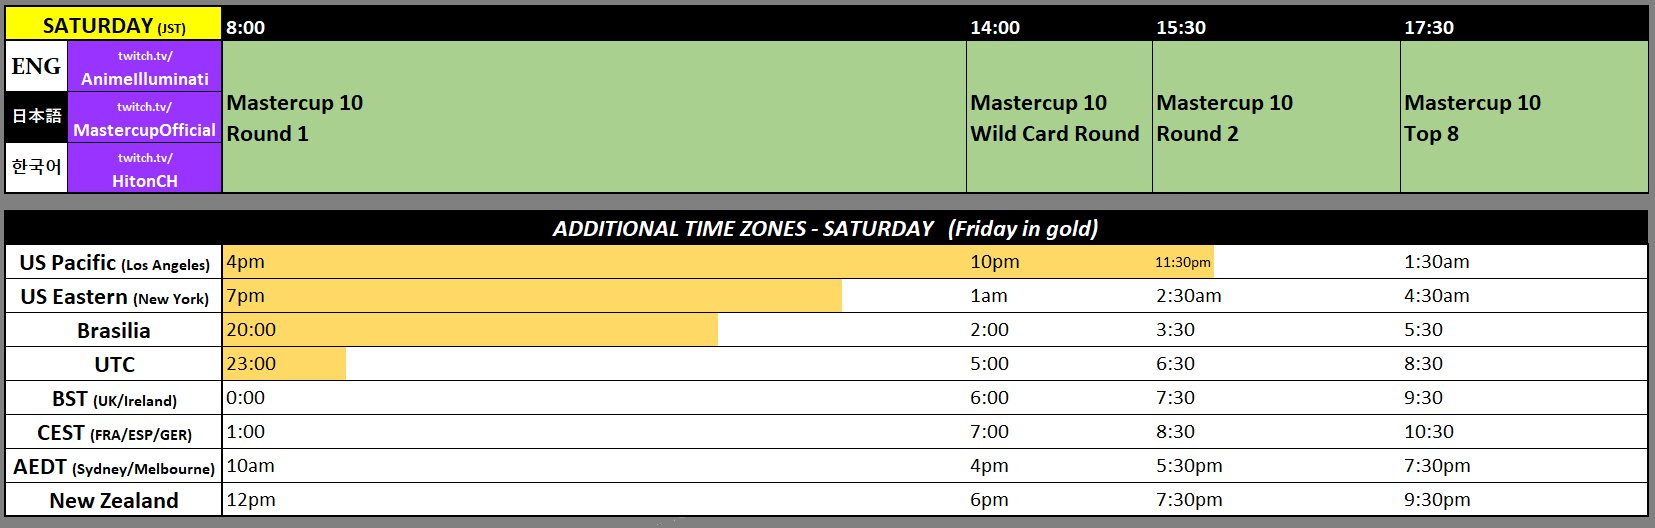 MASTERCUP 10 Event Schedule 1 out of 2 image gallery